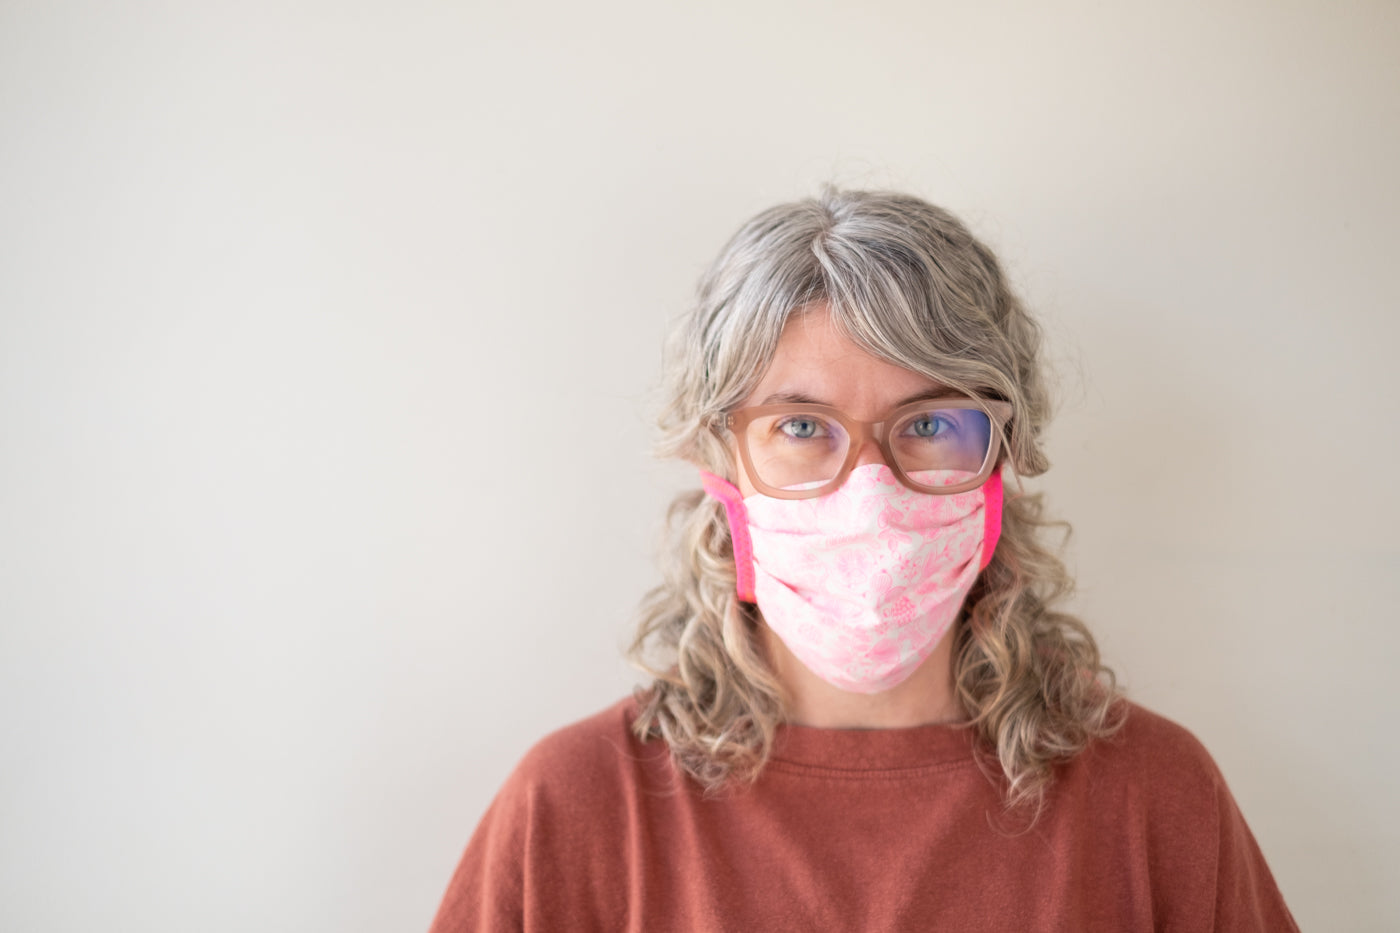 Jaime wearing a pink face mask with bright pink ties standing in front of a white wall.